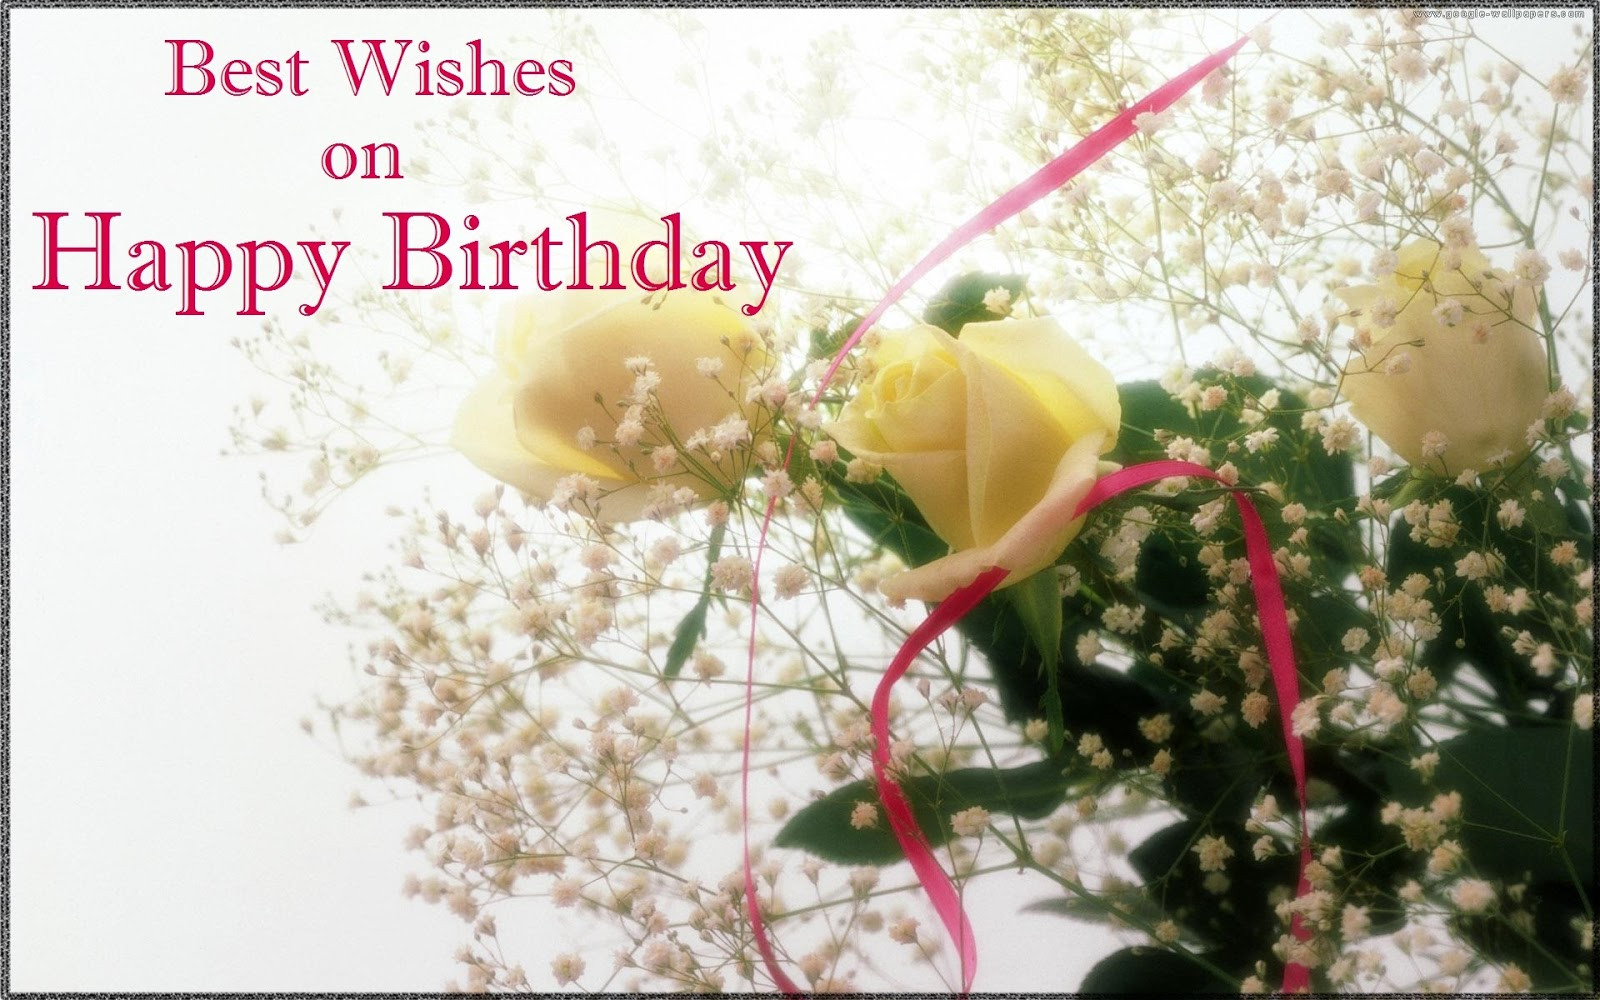 Best ideas about Best Birthday Wishes . Save or Pin 25 Refreshing Birthday Wishes Now.